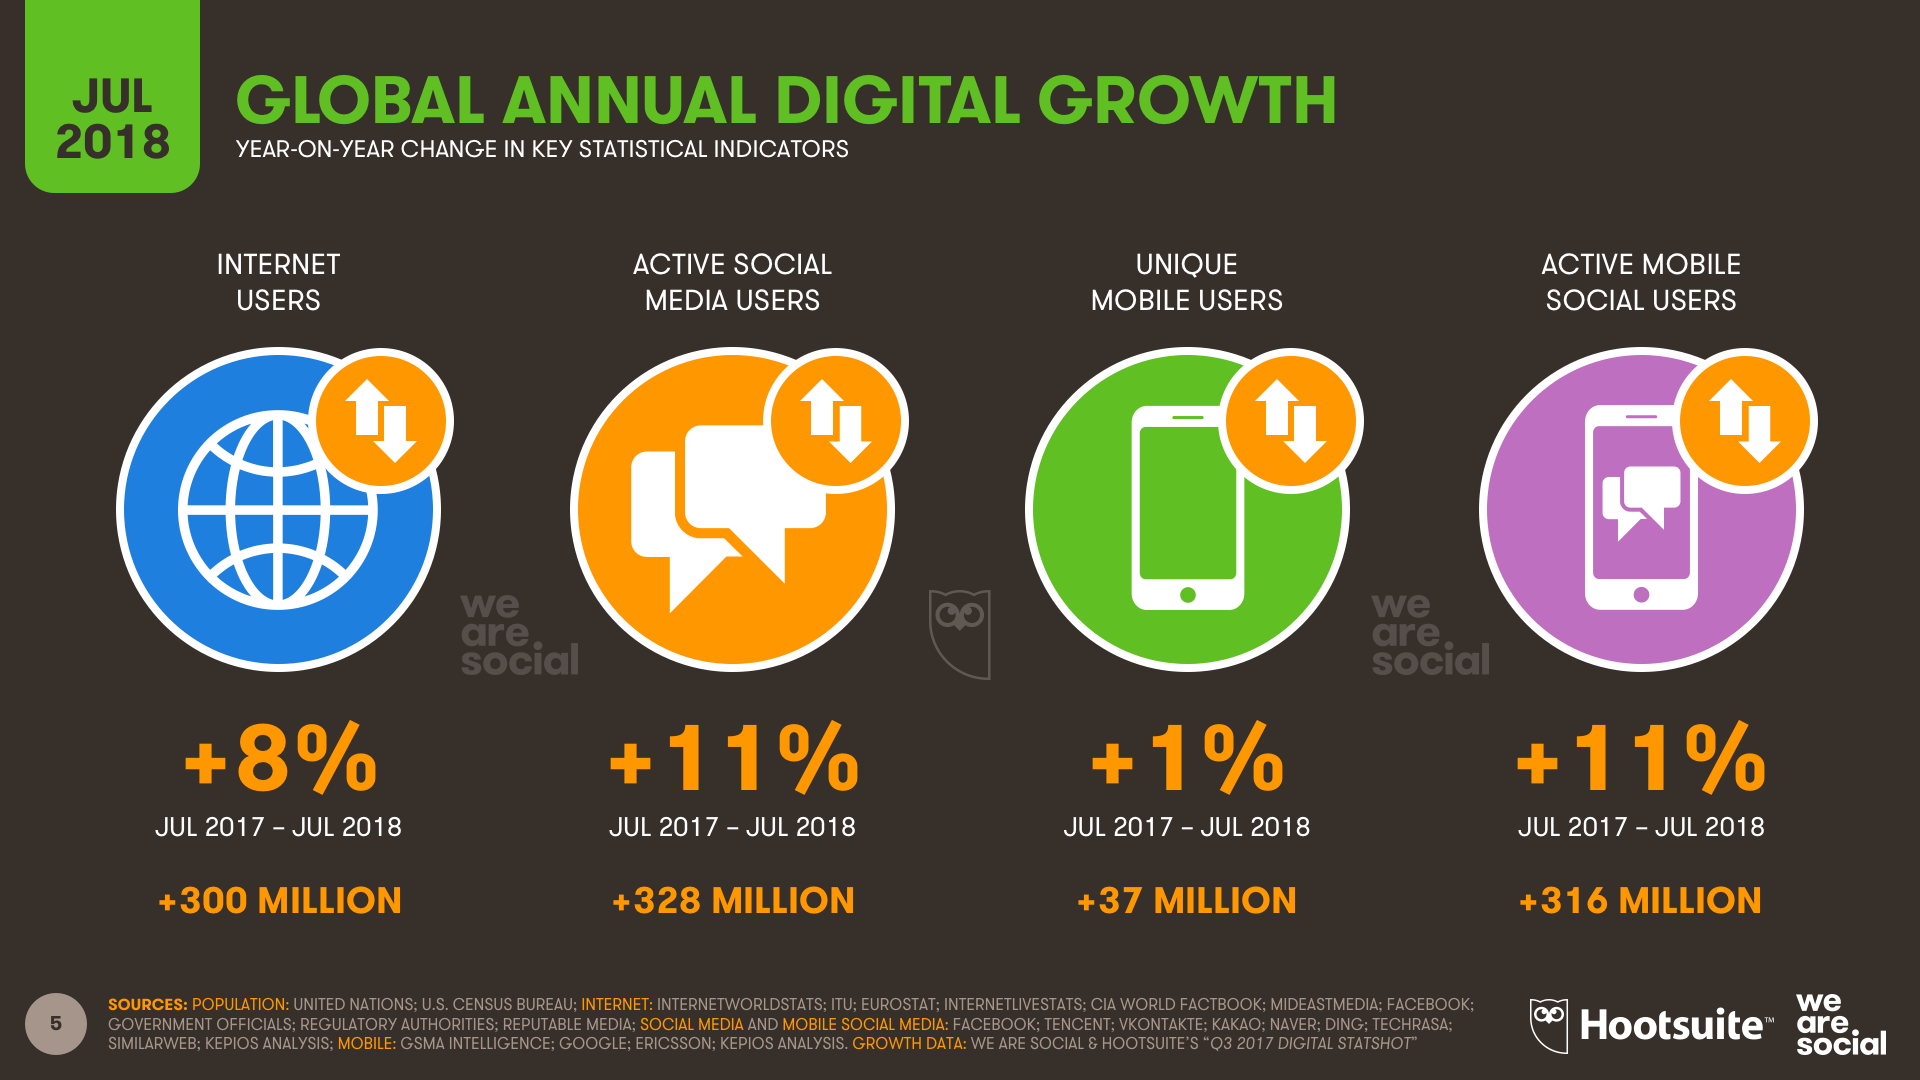 Q3 2018 - Digital Annual Growth